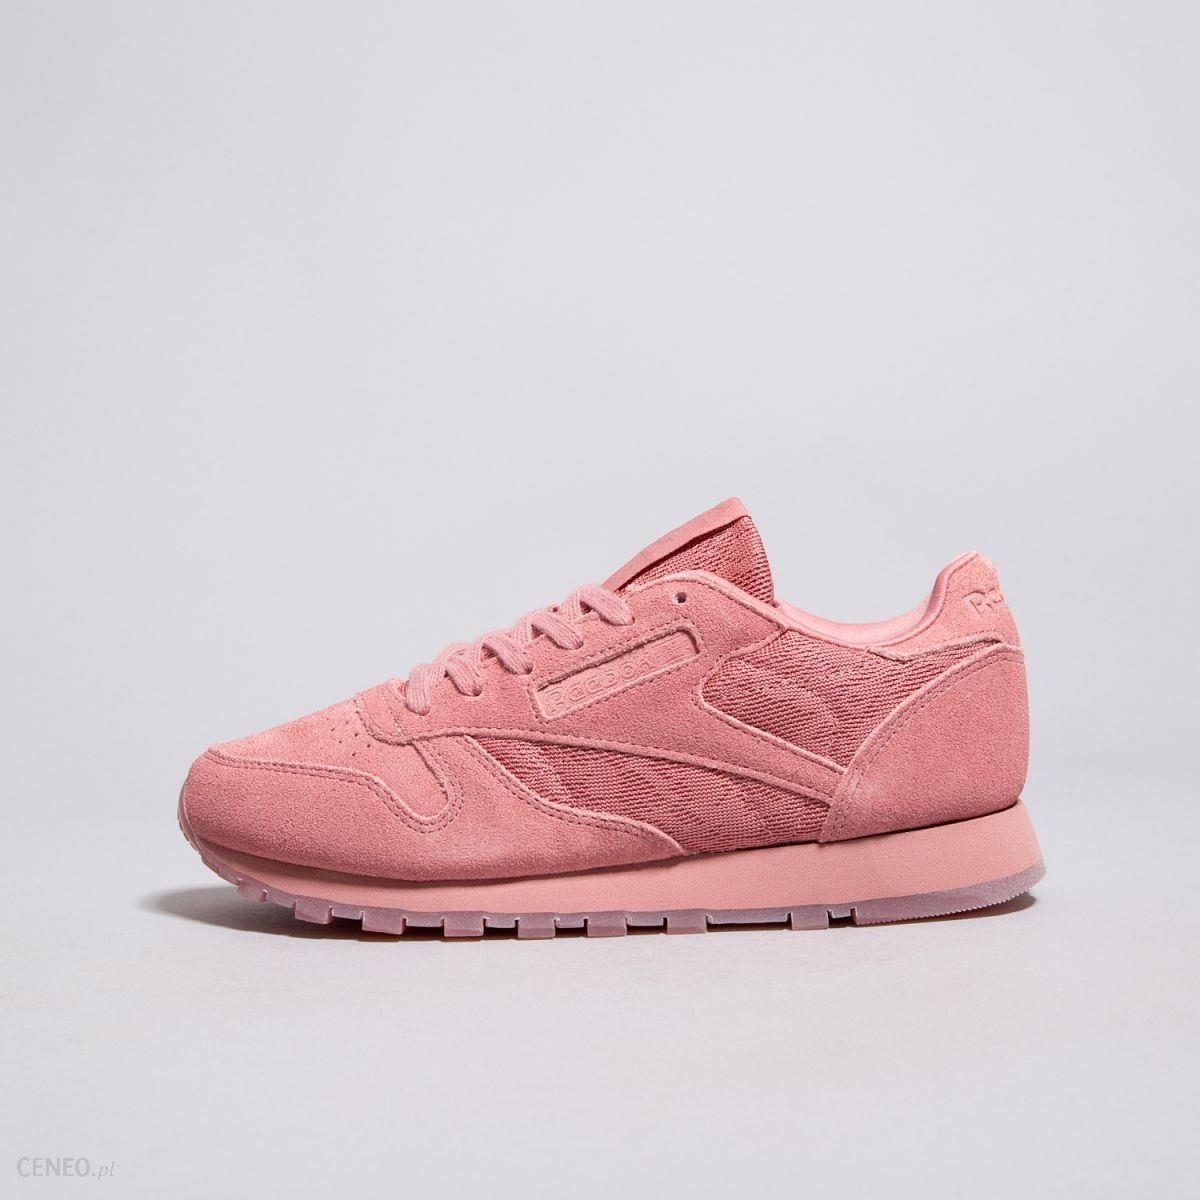 Reebok CLASSIC LEATHER LACE BS6523 Ceny i opinie Ceneo.pl